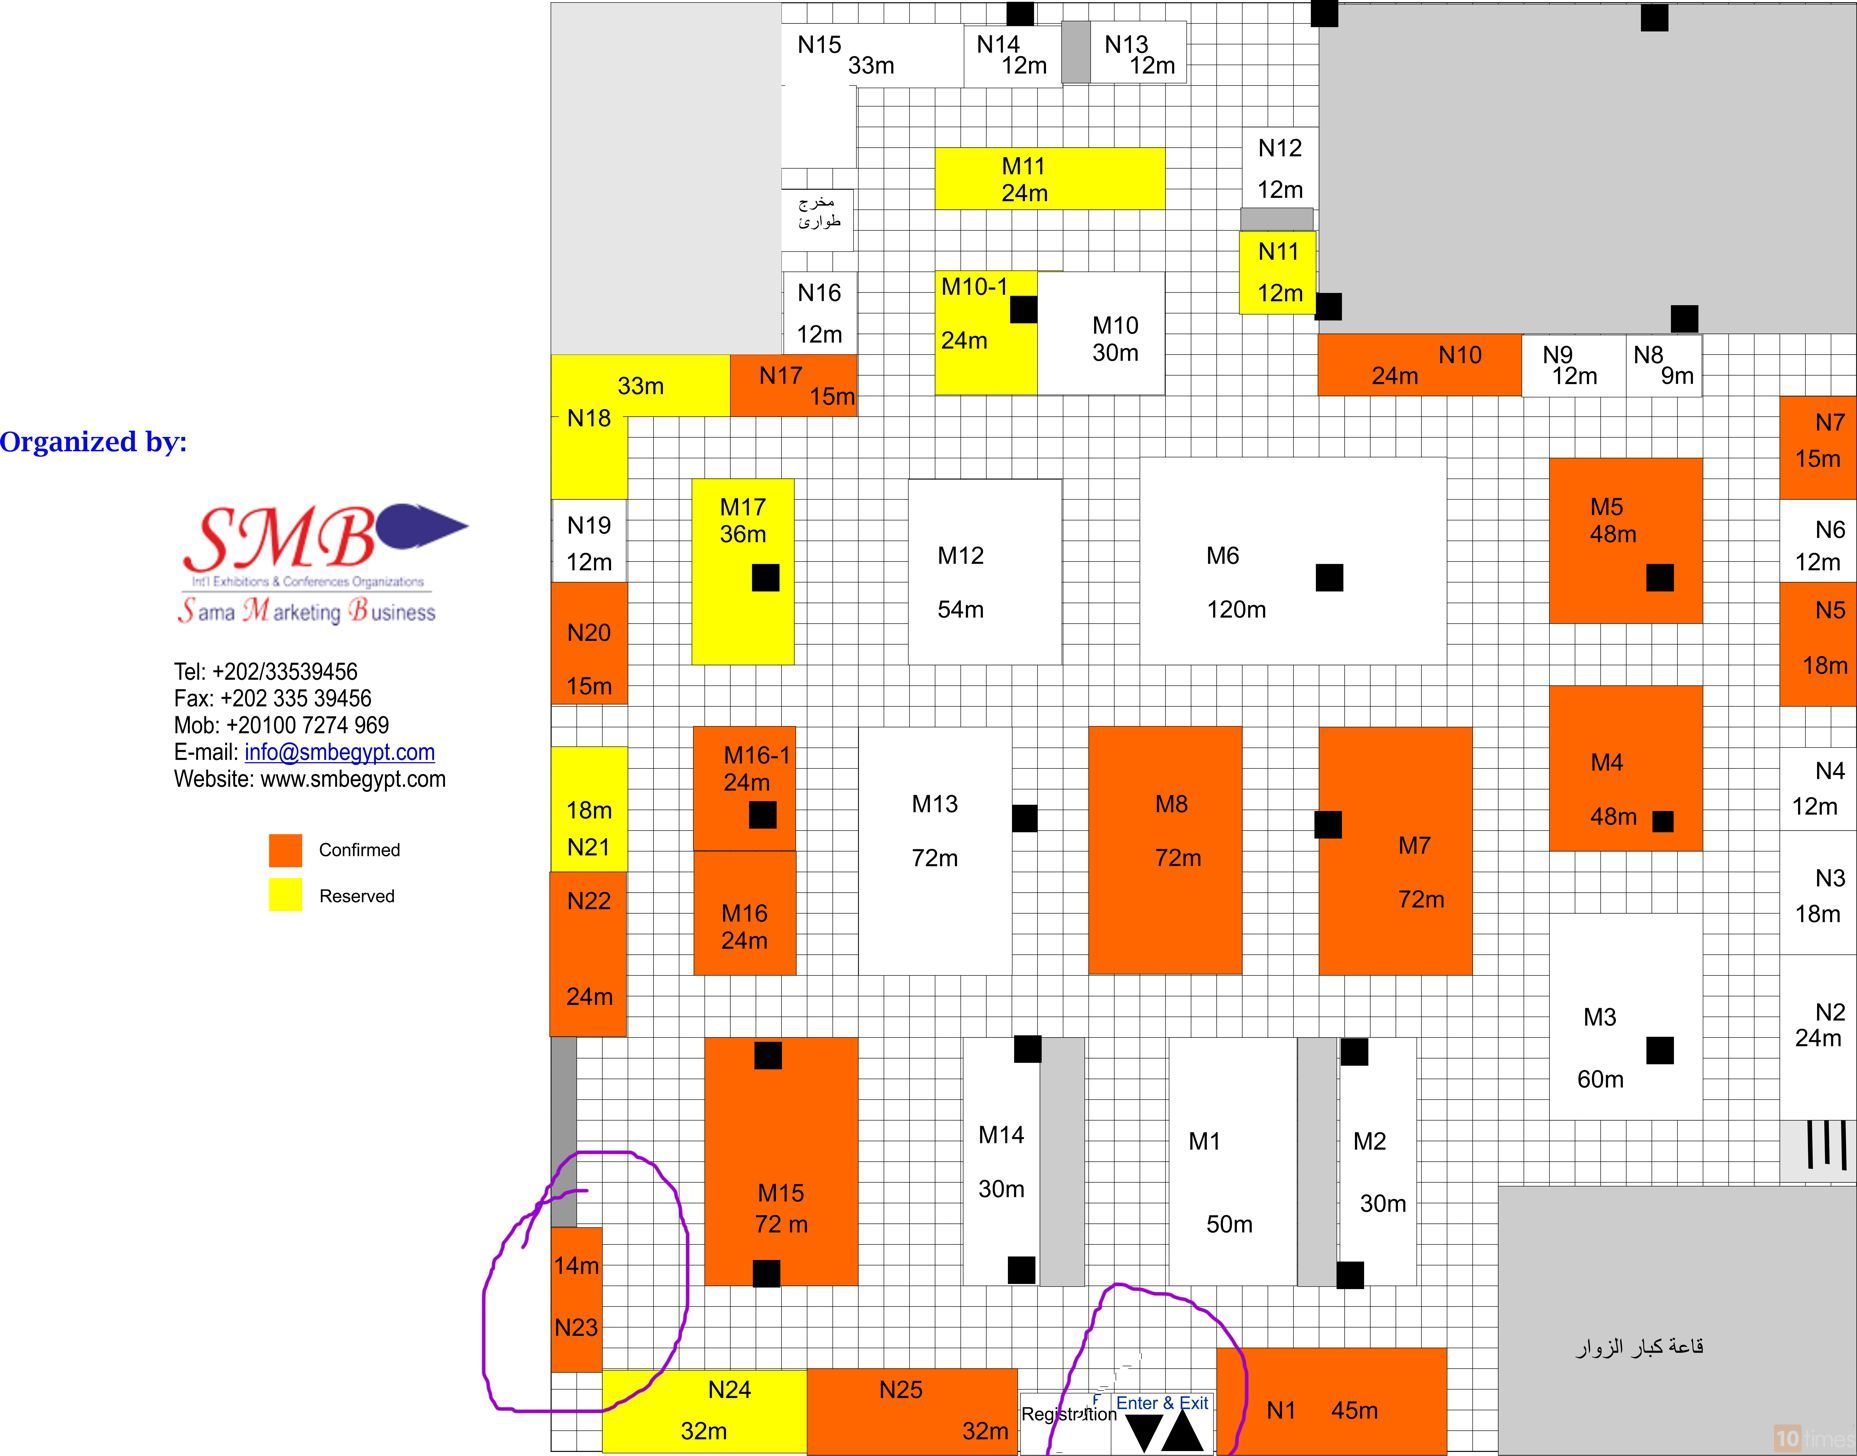 Automation Technology Expo Sep 2021 International Industrial Control Automation Technology Exhibition Conference Cairo Egypt Trade Show